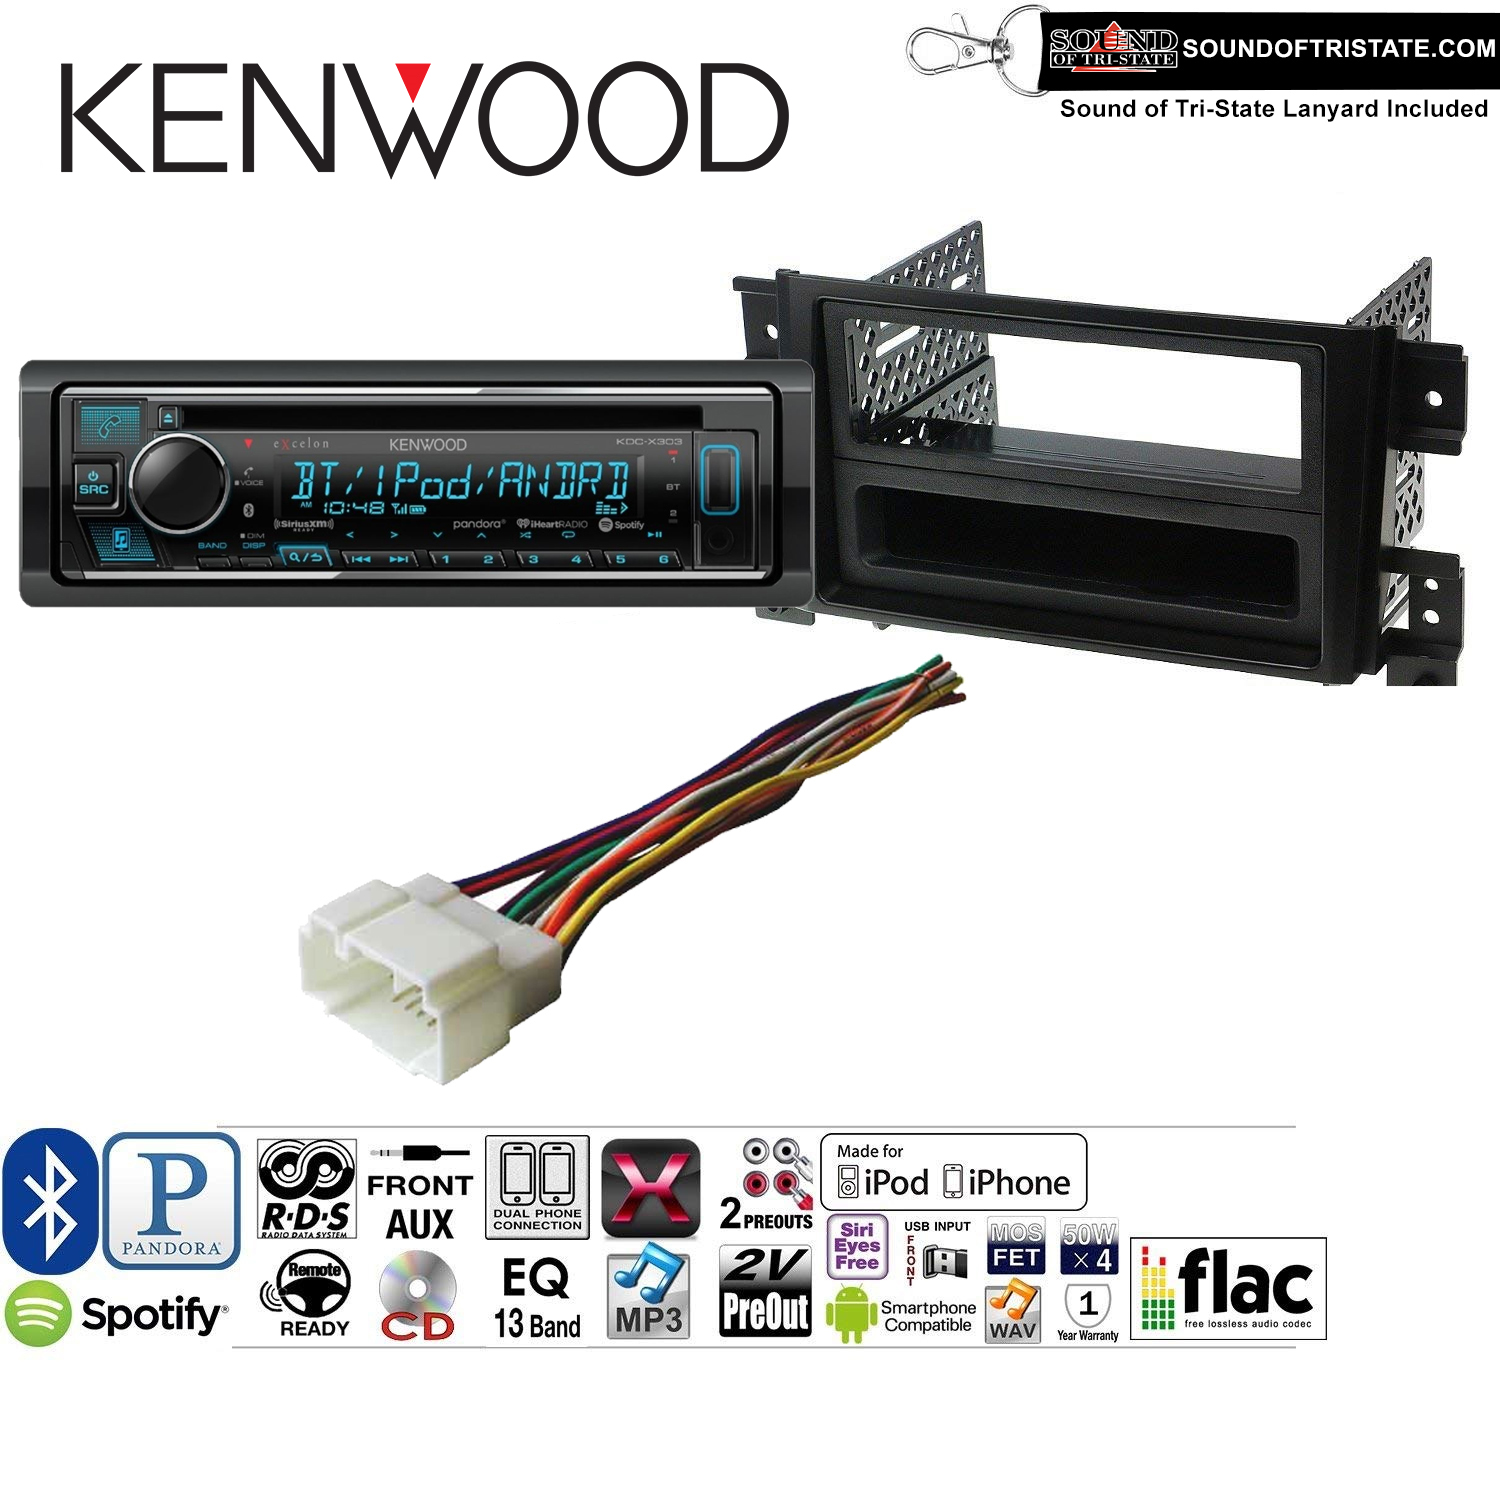 Kenwood KDCX303 Double Din Radio Install Kit with Bluetooth, CD Player, USB/AUX Fits 2006-2013 Suzuki Grand Vitara and a SOTS lanyard included